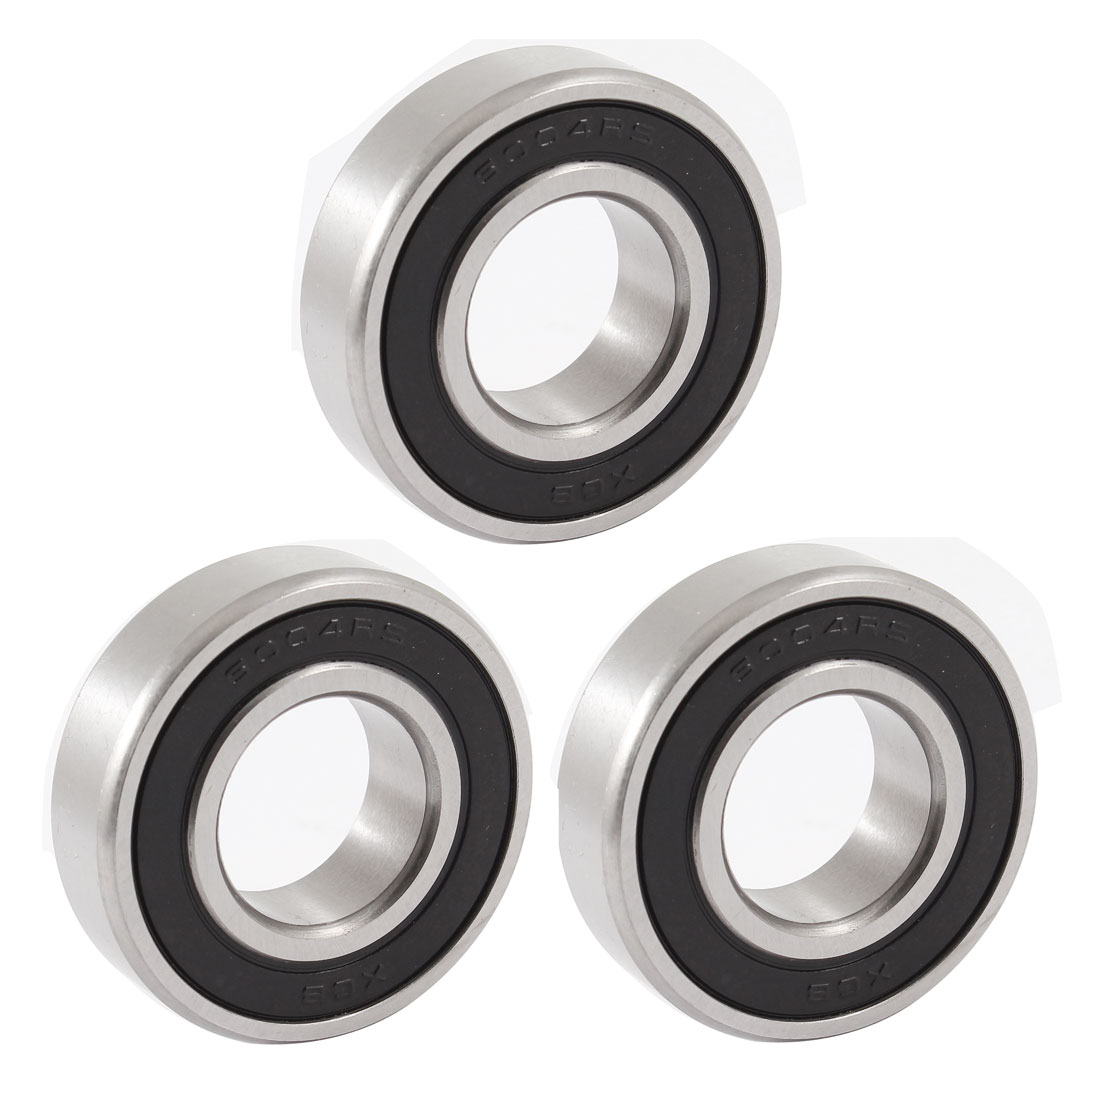 6004RS 42mm Outer 20mm Inner Dia Single Row Deep Groove Ball Bearing 3 Pcs